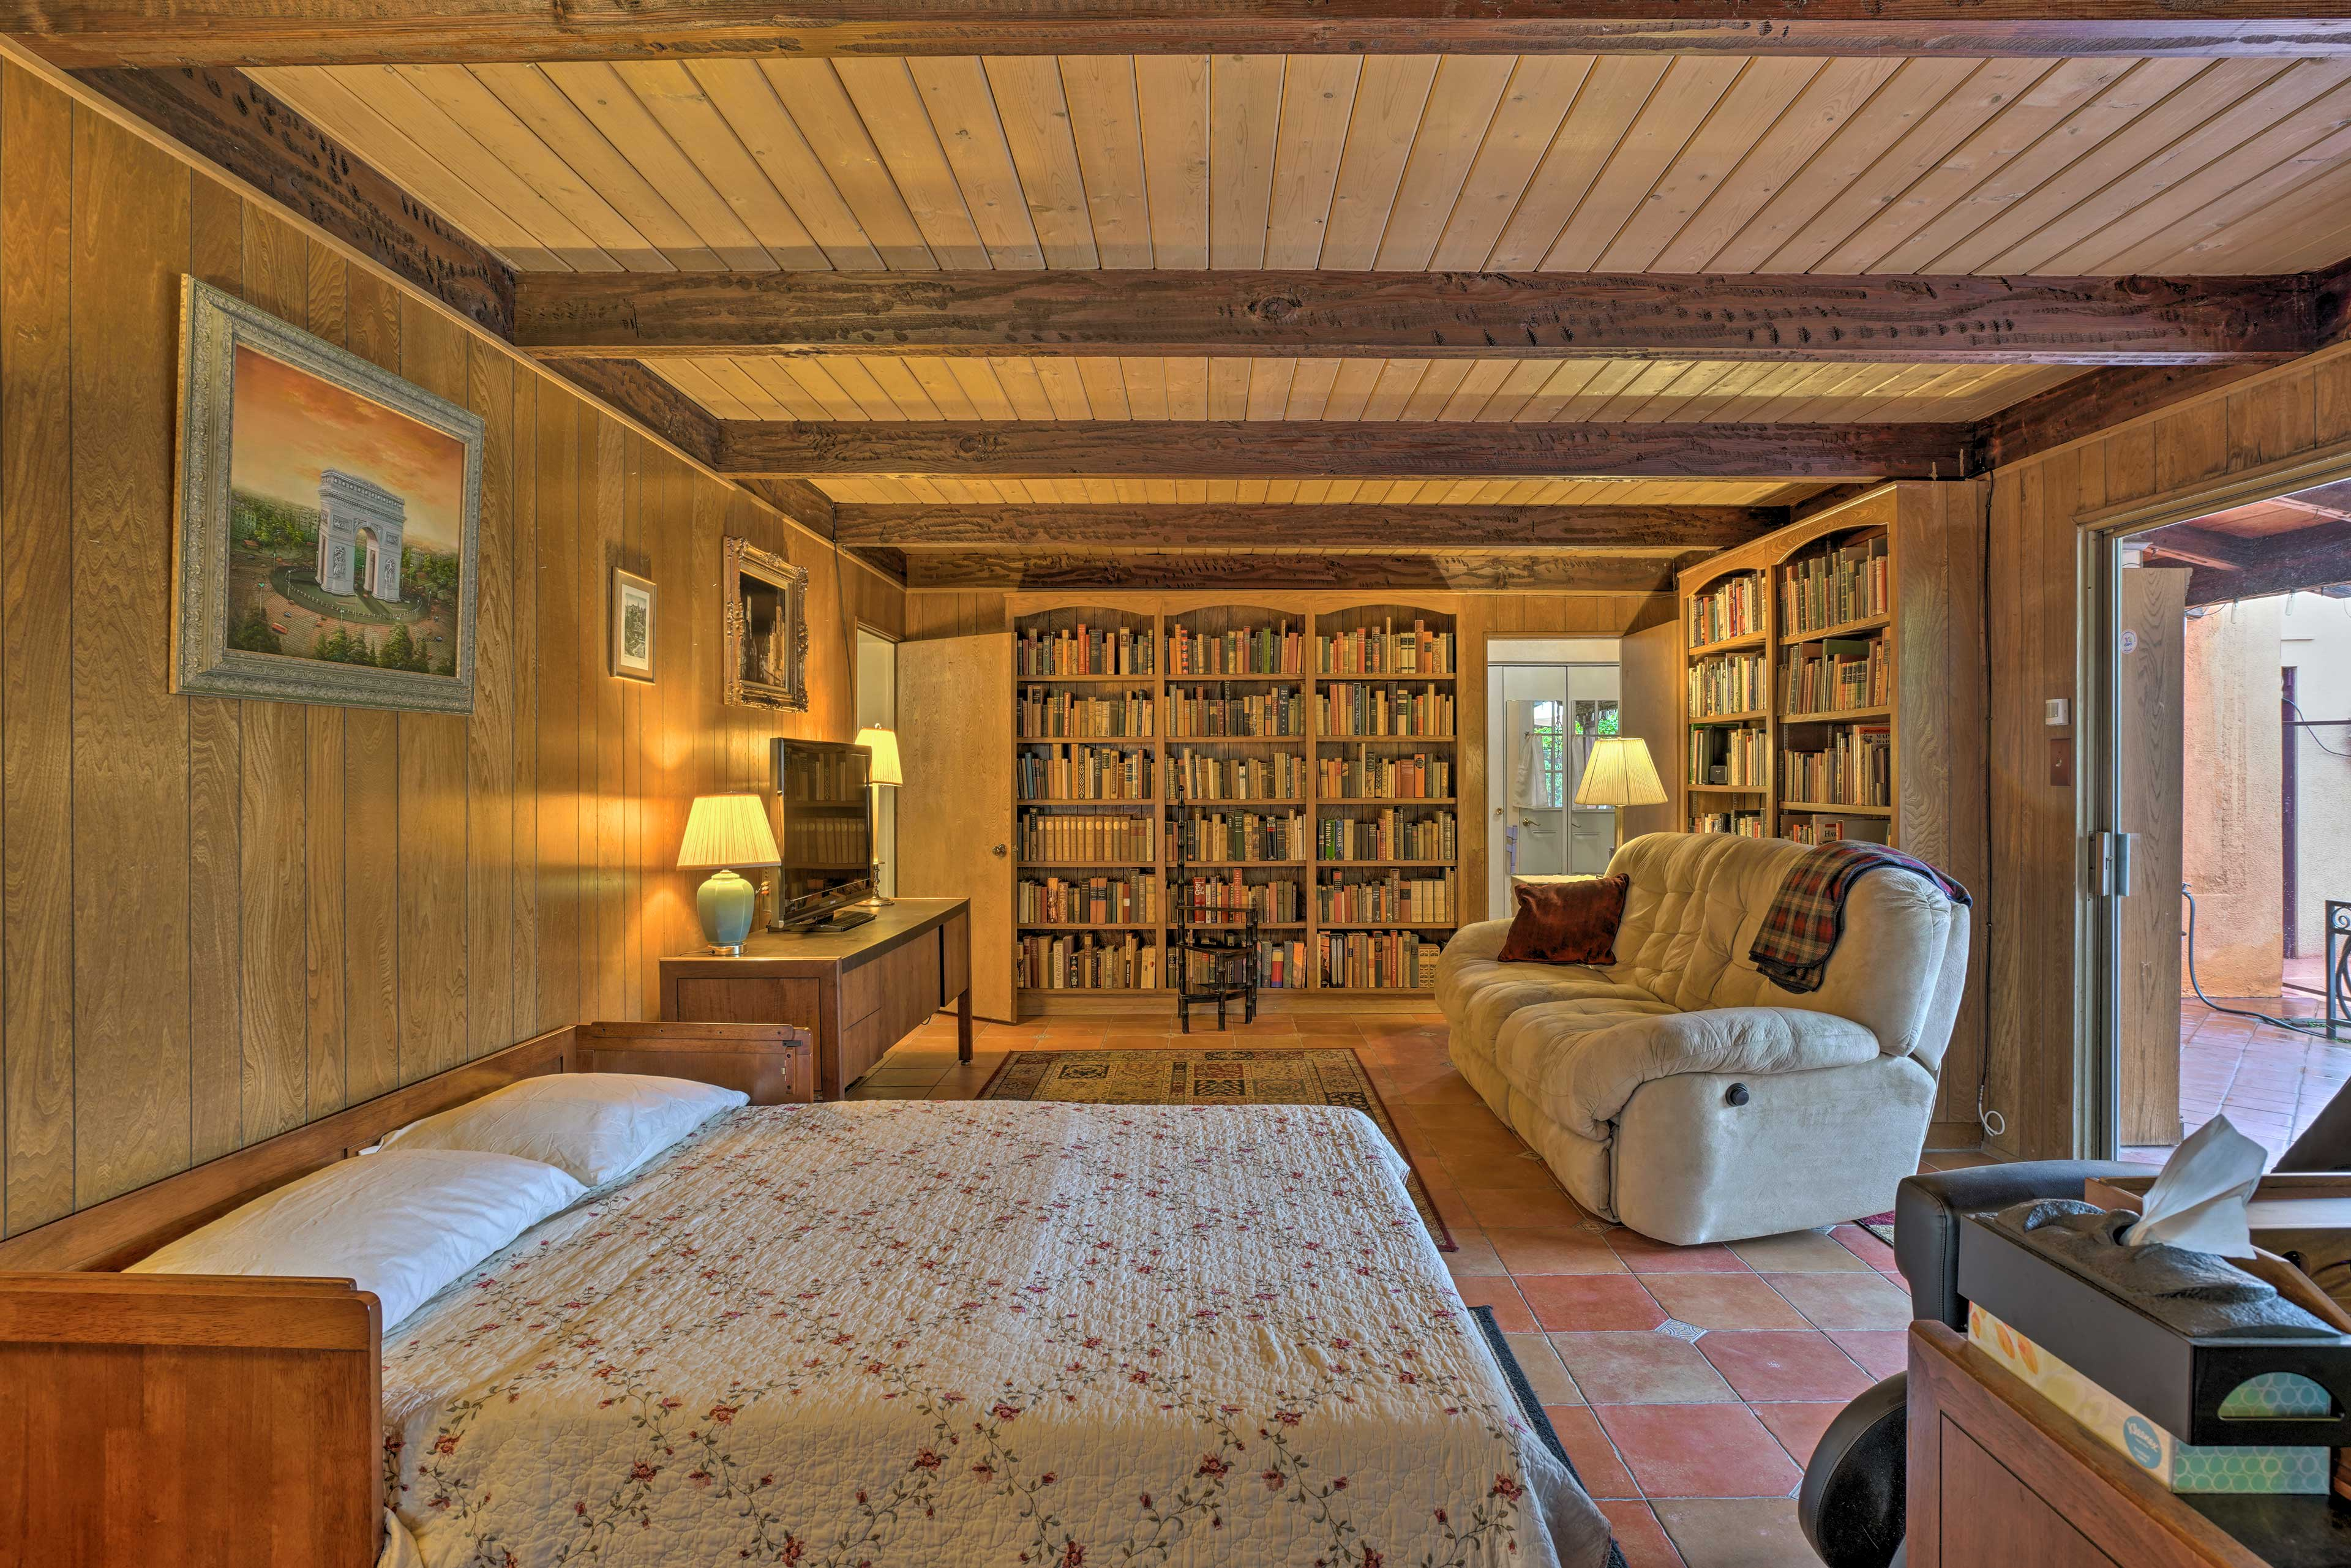 You'll find a queen bed and tons of entertainment in the library.